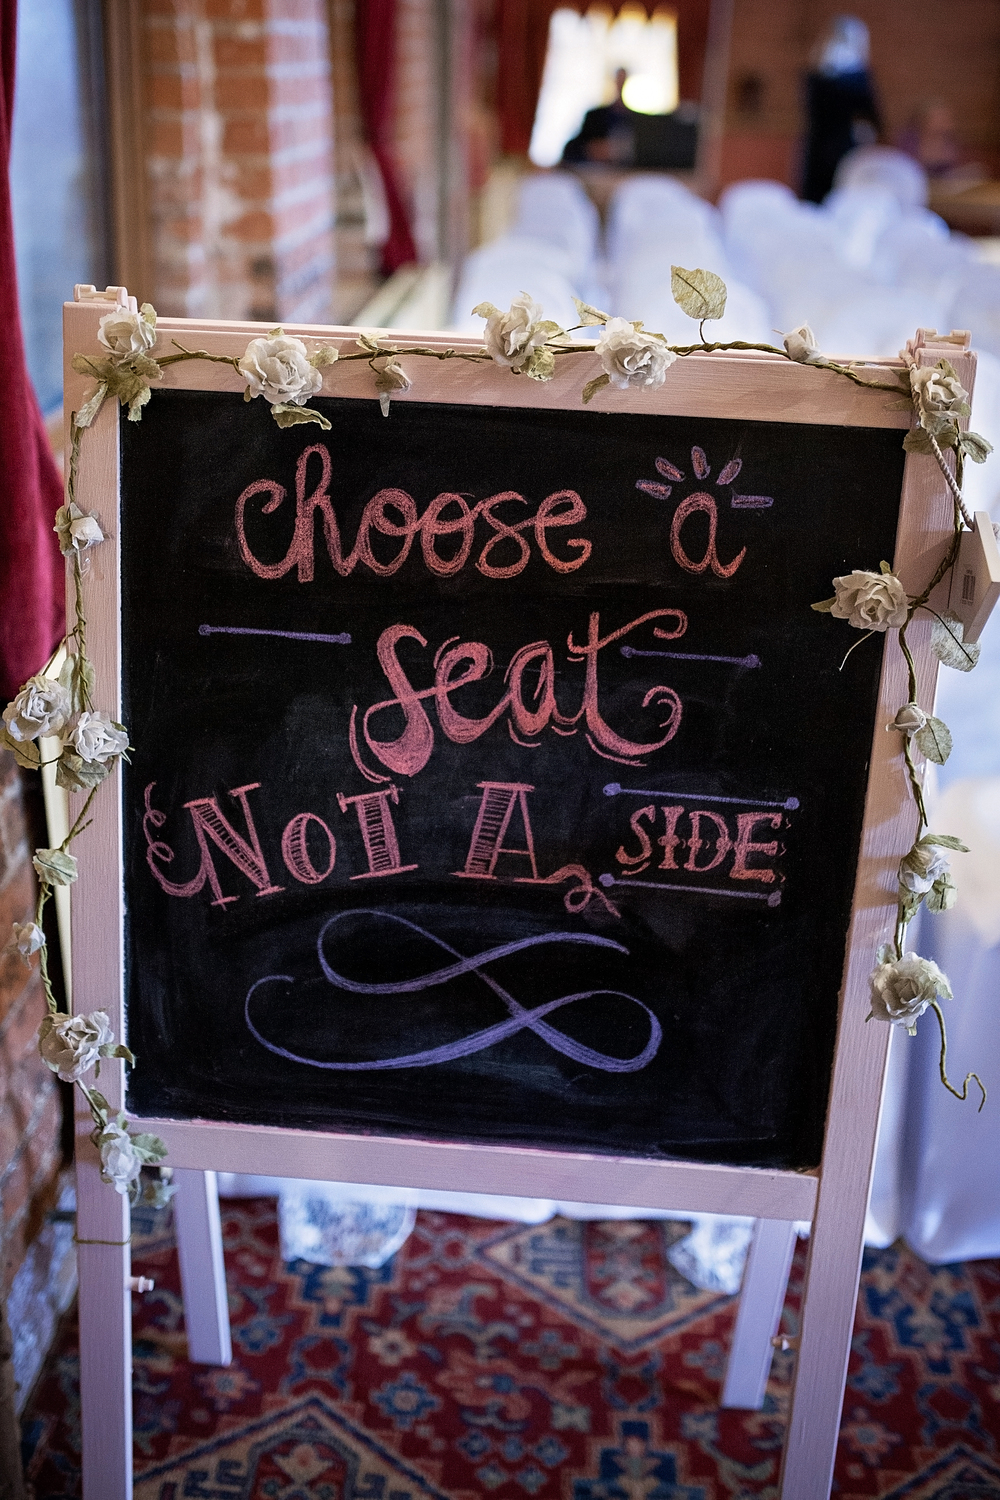 Take a seat not a side wedding guests